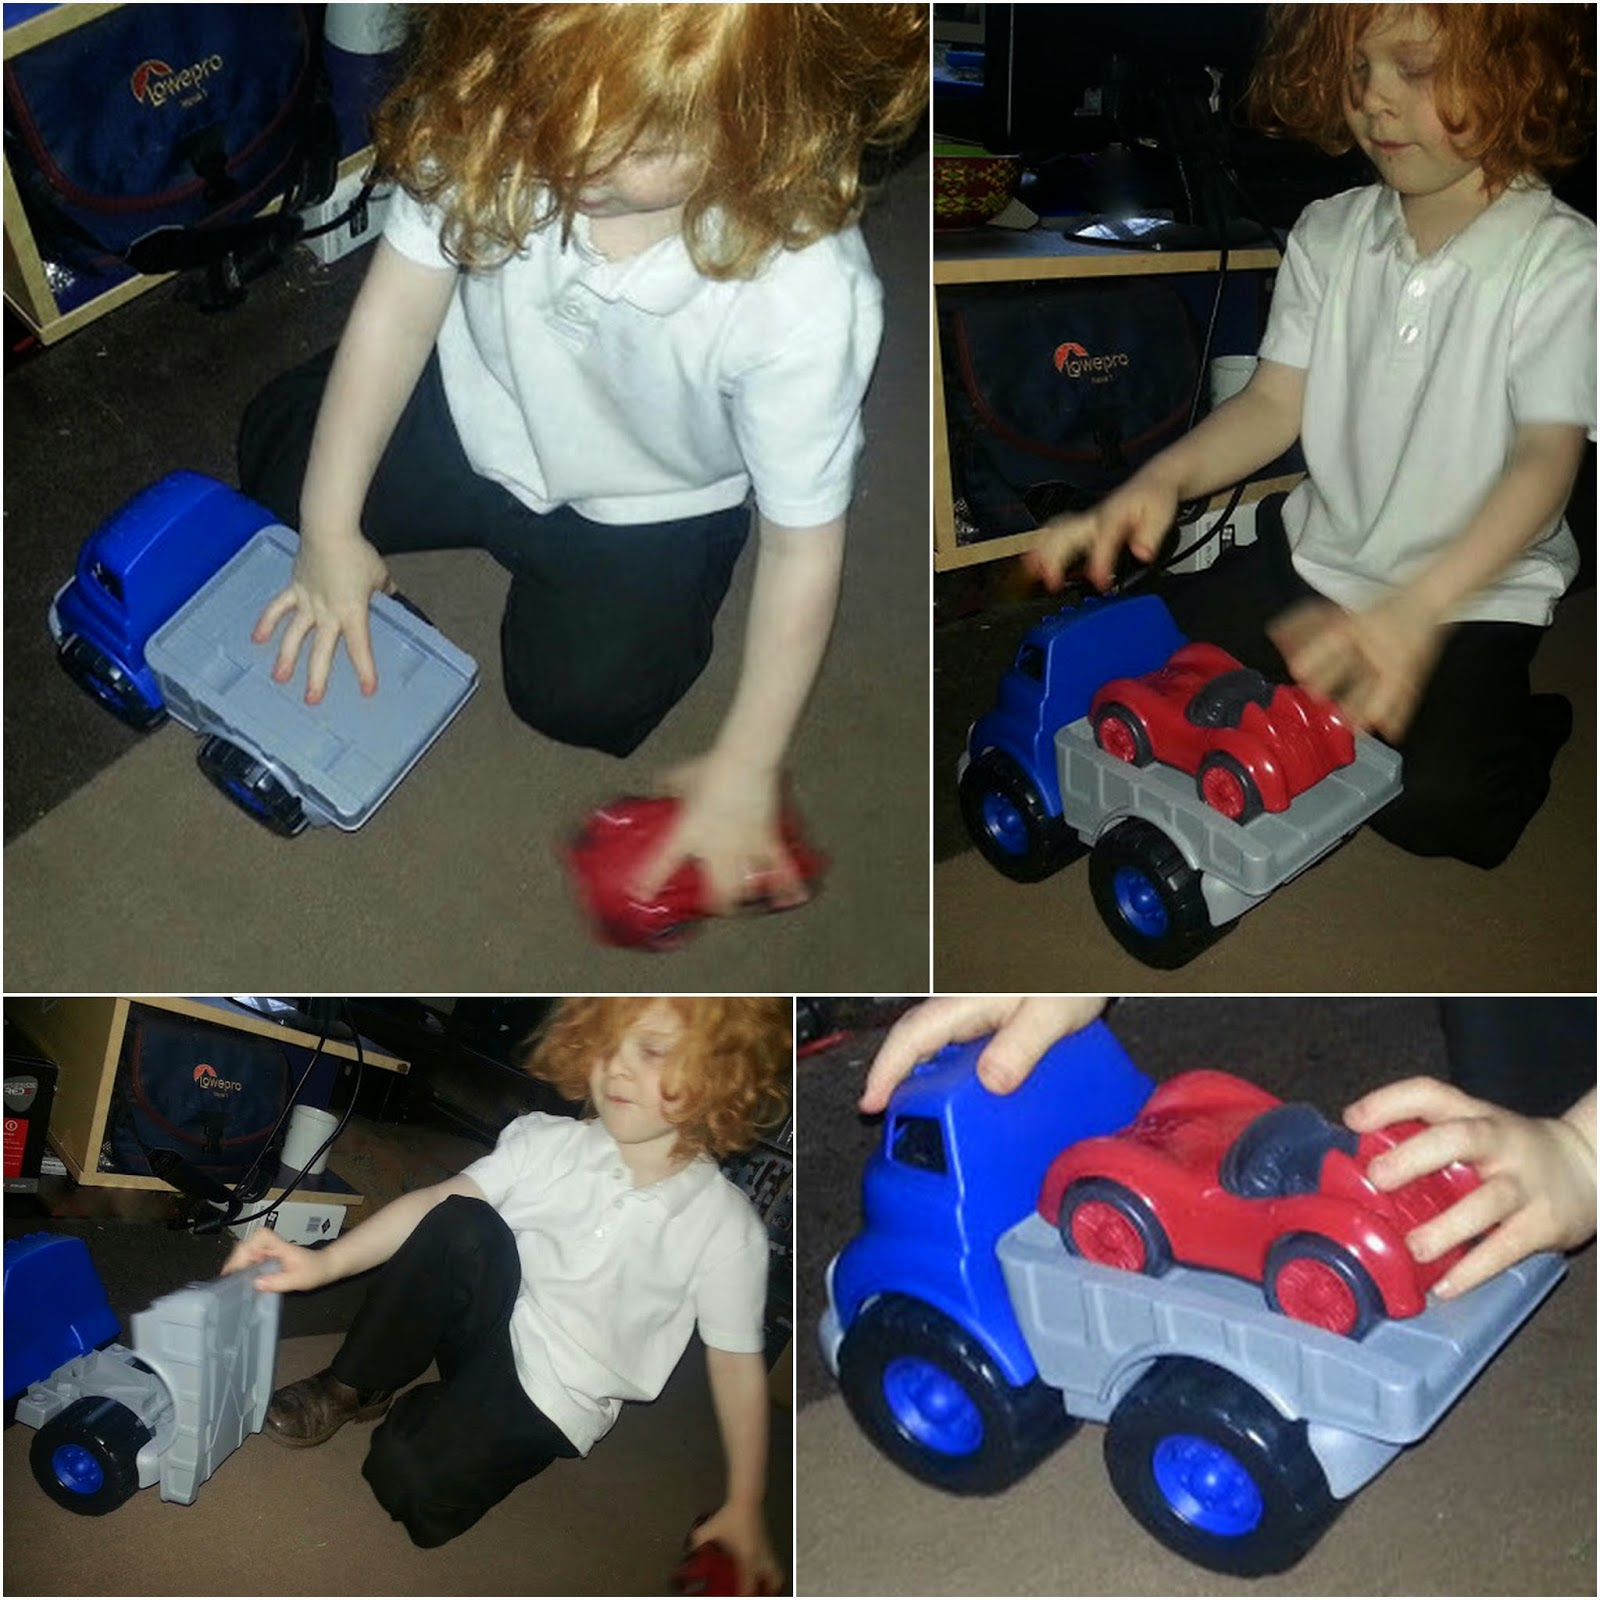 4 year old brumming with his cars on the carpet